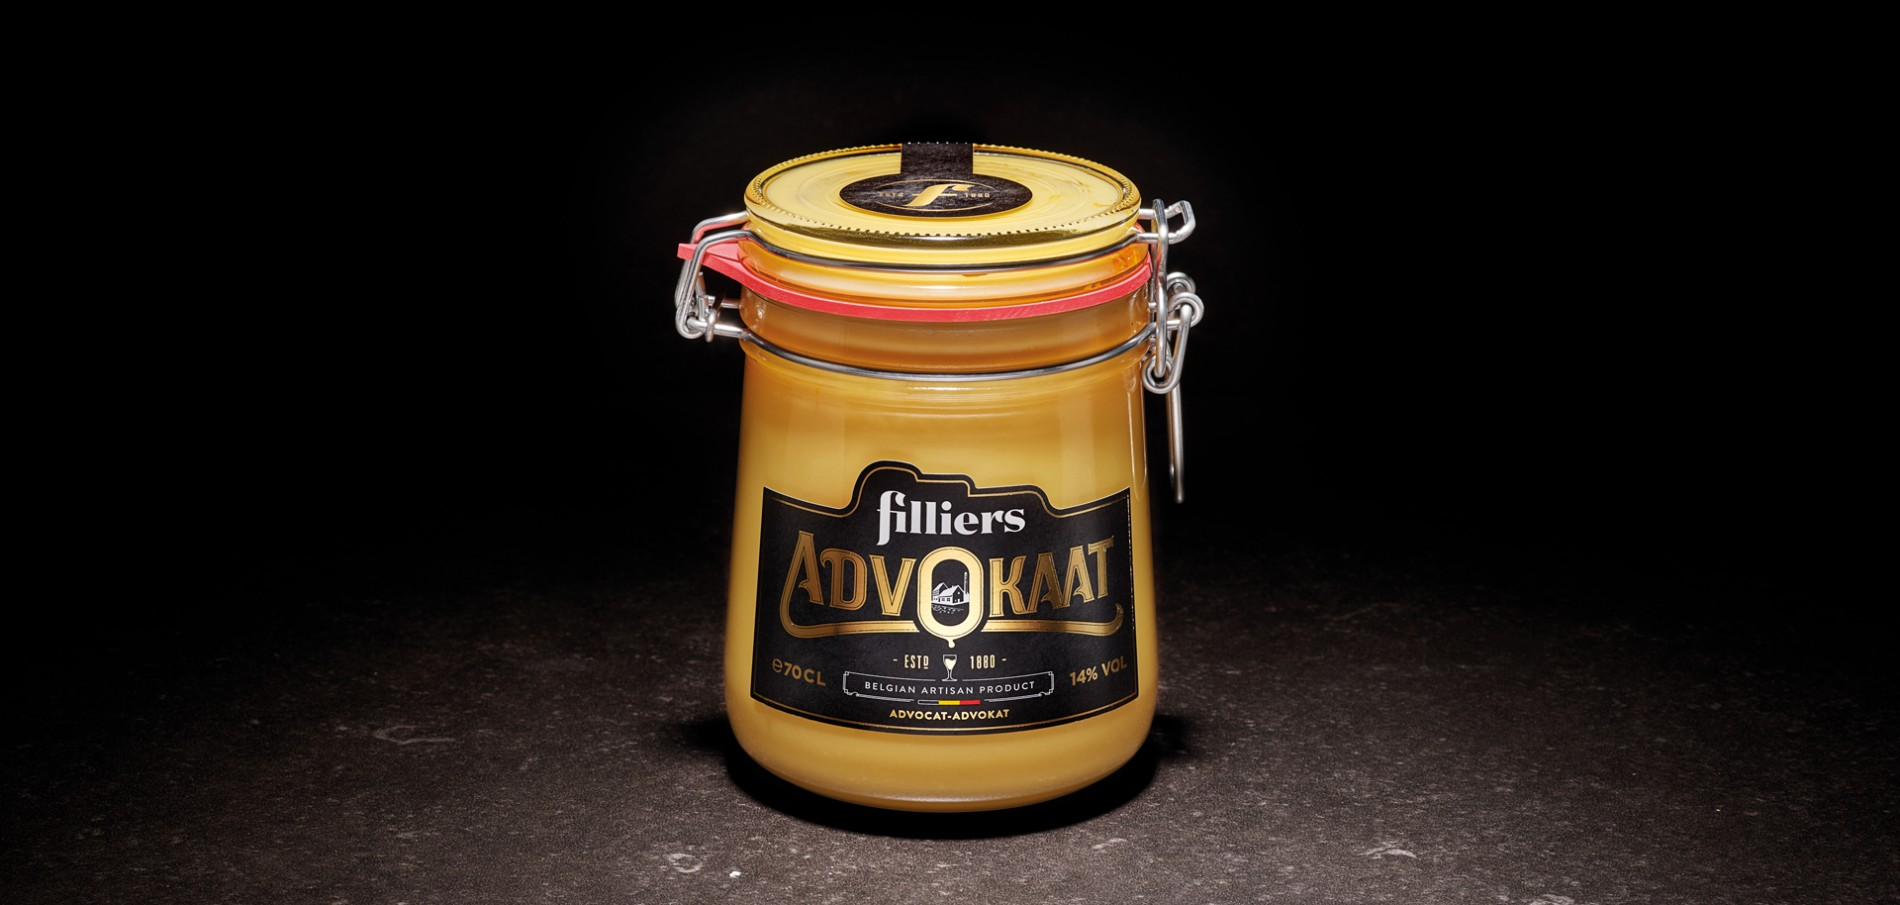 Quatre Mains package design - Package design advokaat, advocaat, filliers